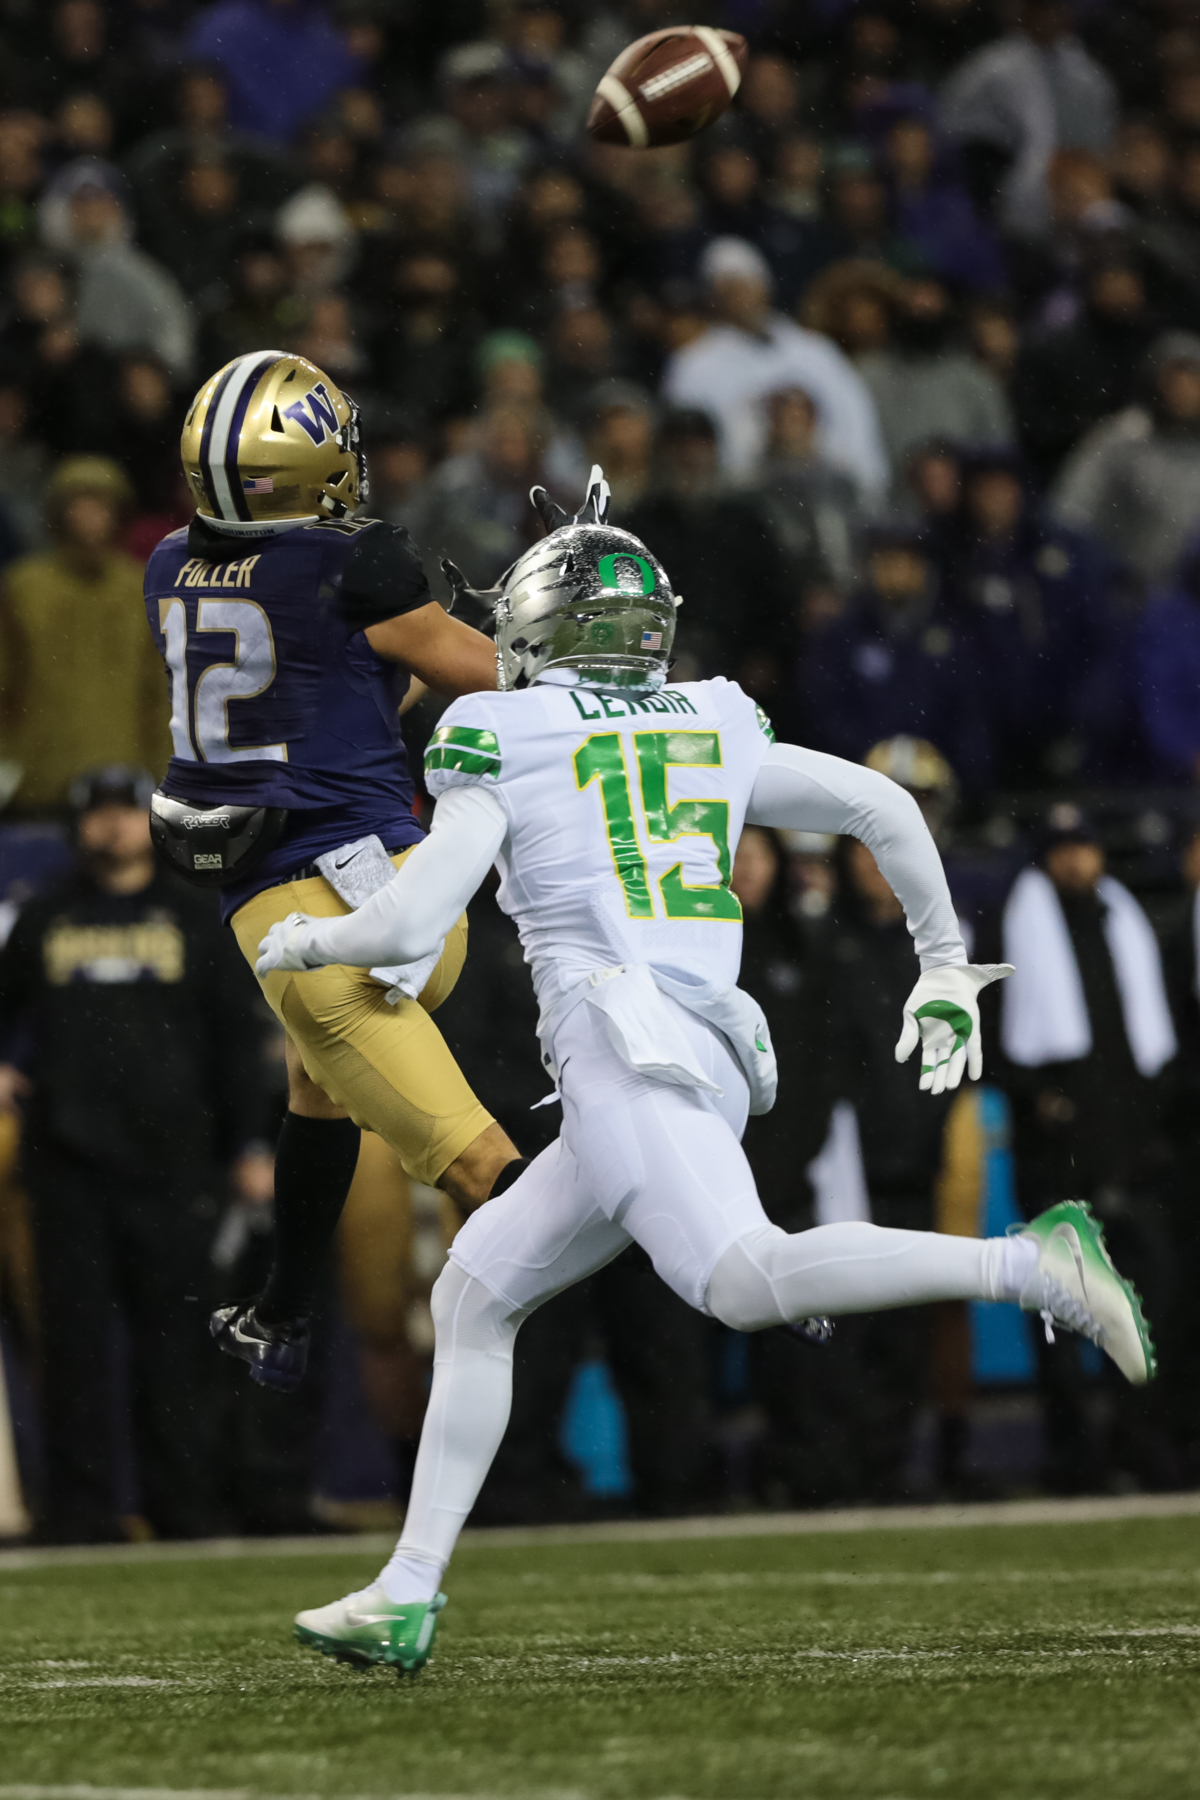 Washington wide receiver Aaron Fuller (#21) goes up to catch a pass while covered by Oregon cornerback Deommodore Lenoir (#15). The Oregon Ducks are trailing the Washington Huskies 3 - 17 at halftime.  The Huskies rallied with a 17-point second quarter after a slow first quarter on a cold and rainy night in Seattle, Washington.  Photo by Austin Hicks, Oregon News Lab